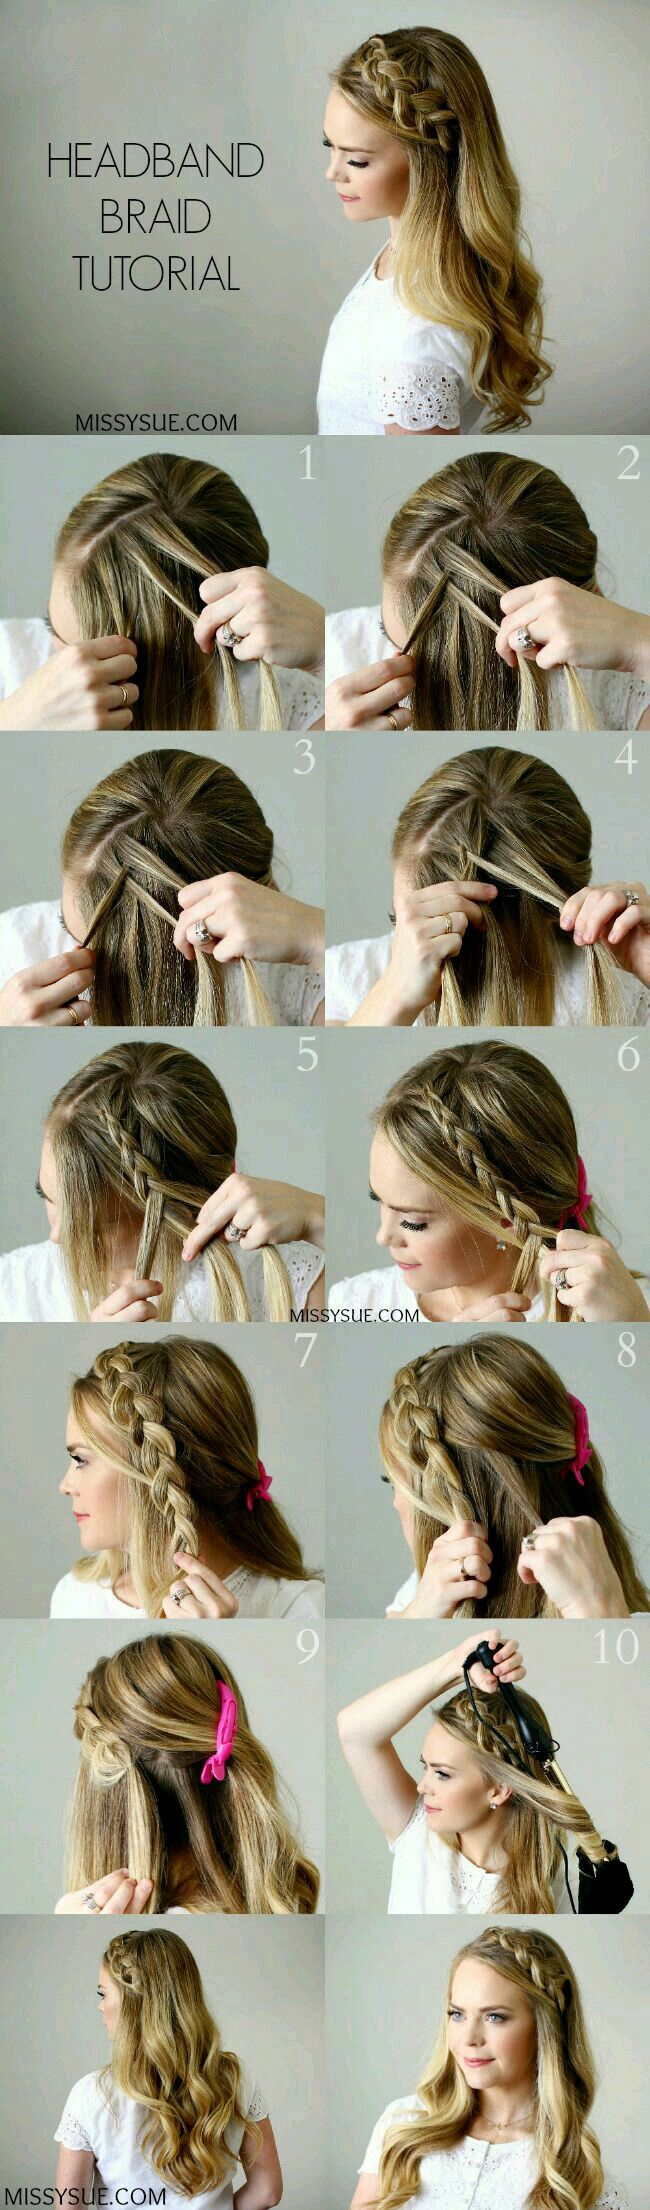 Headband Braid Tutorial!!